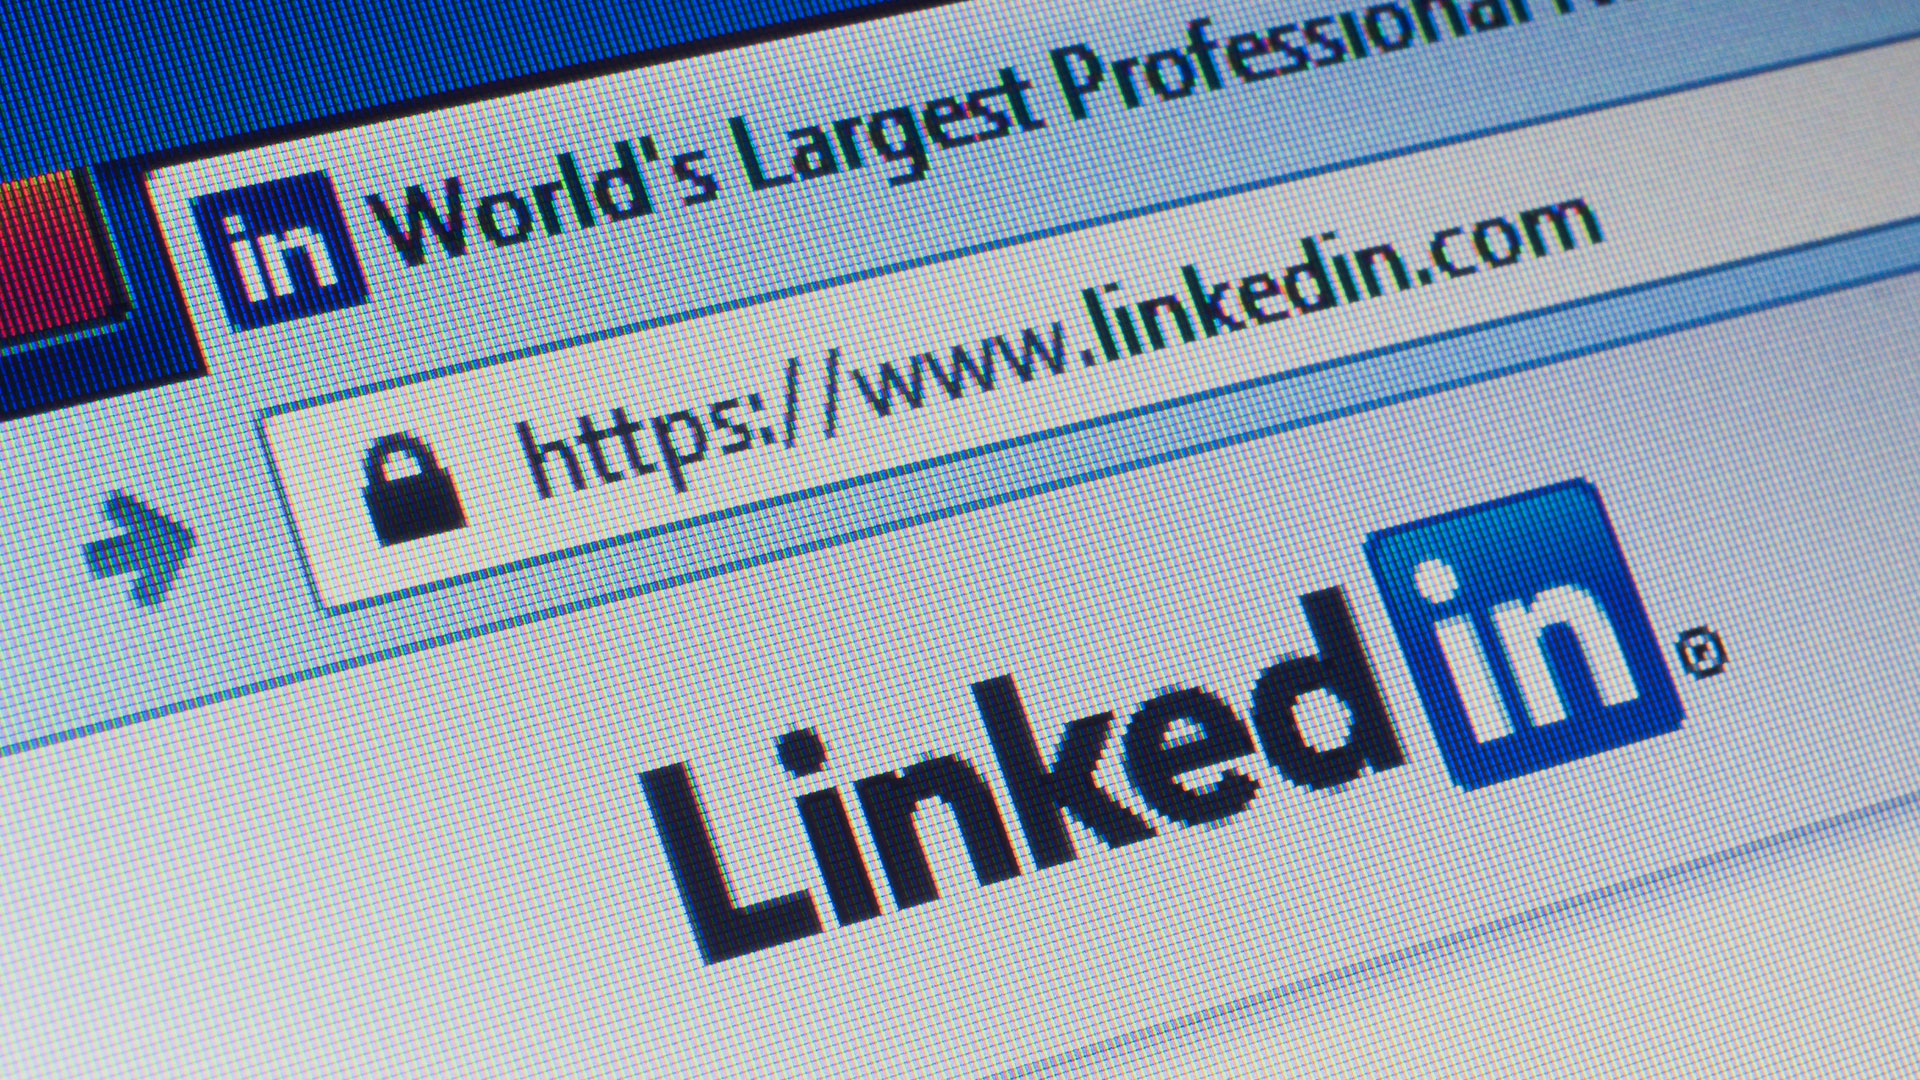 LinkedIn refreshes desktop interface, emphasizing content and conversation